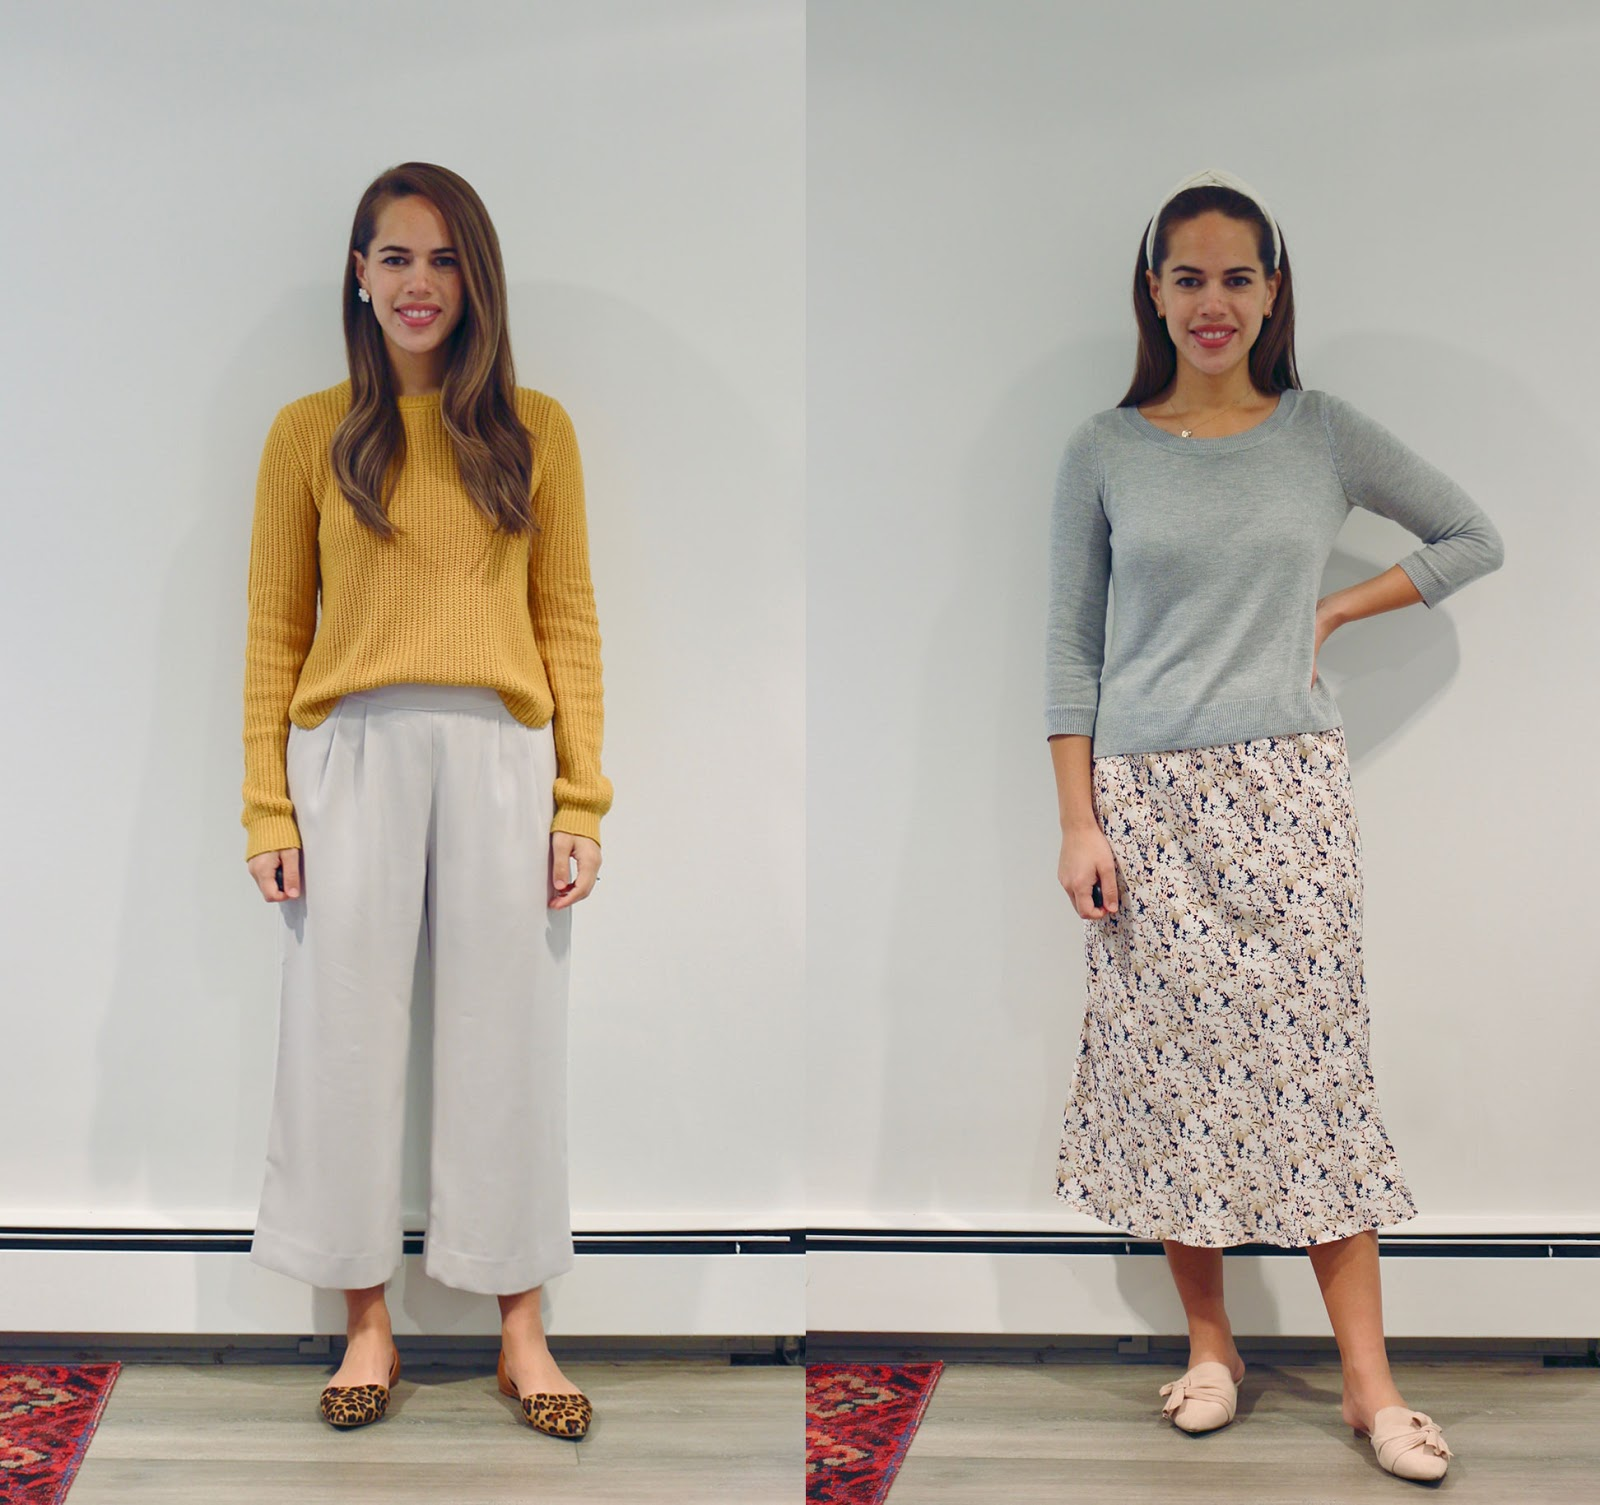 Jules in Flats - September Outfits (Business Casual Workwear on a Budget)